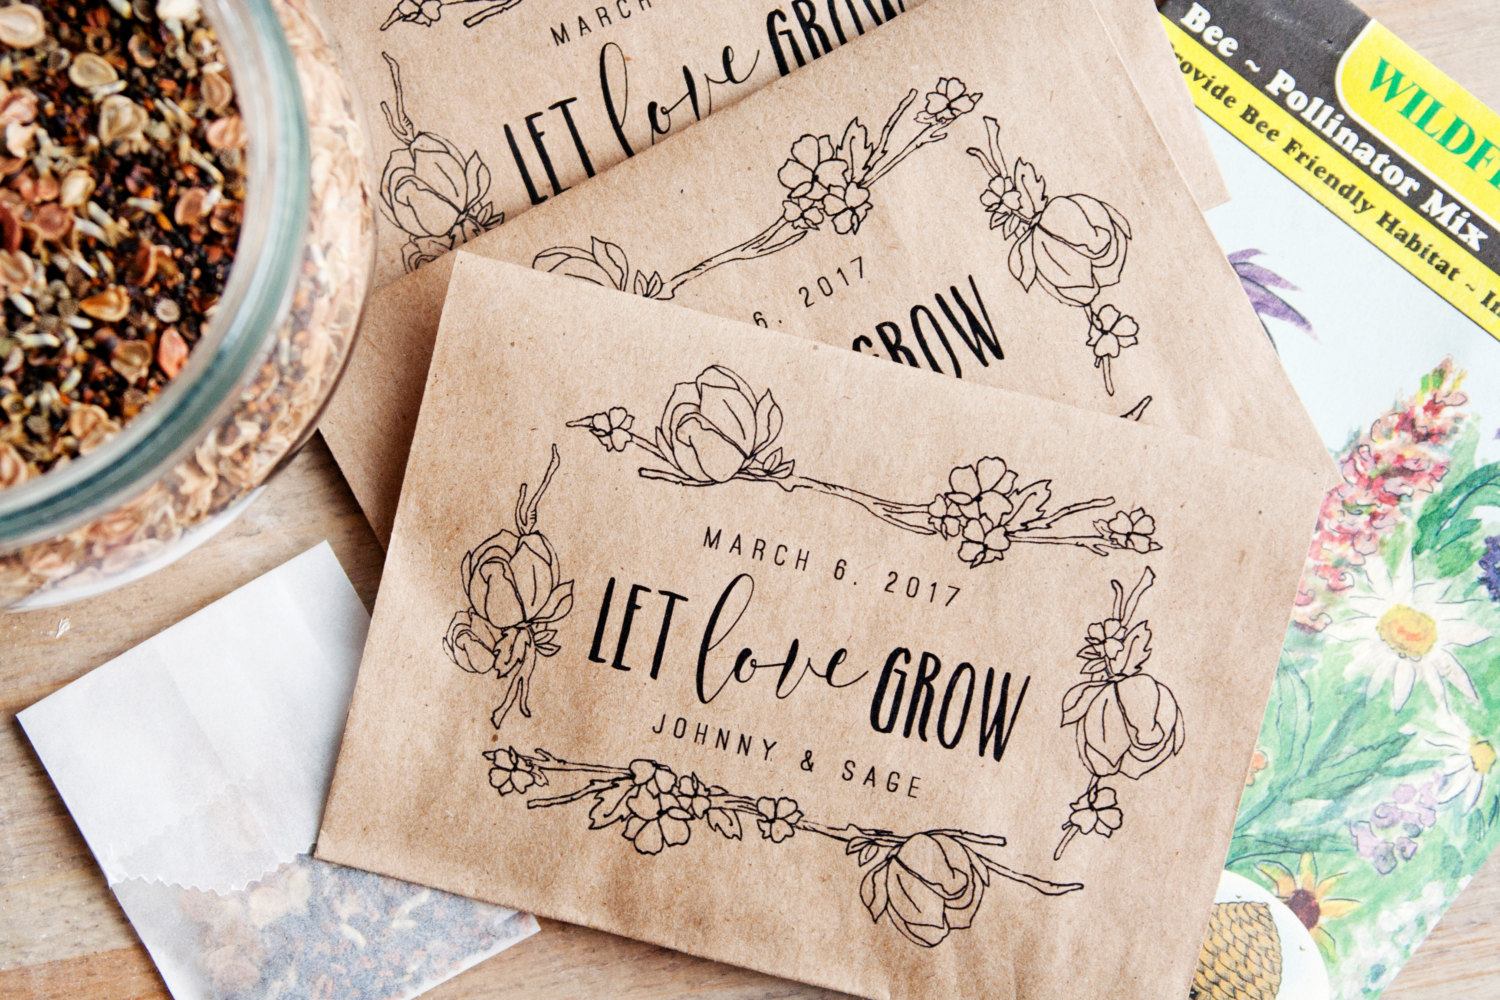 Where to Buy Seed Packet Favors for Weddings | by Mavora | via http://emmalinebride.com/favors/seed-packet-favors-for-weddings/